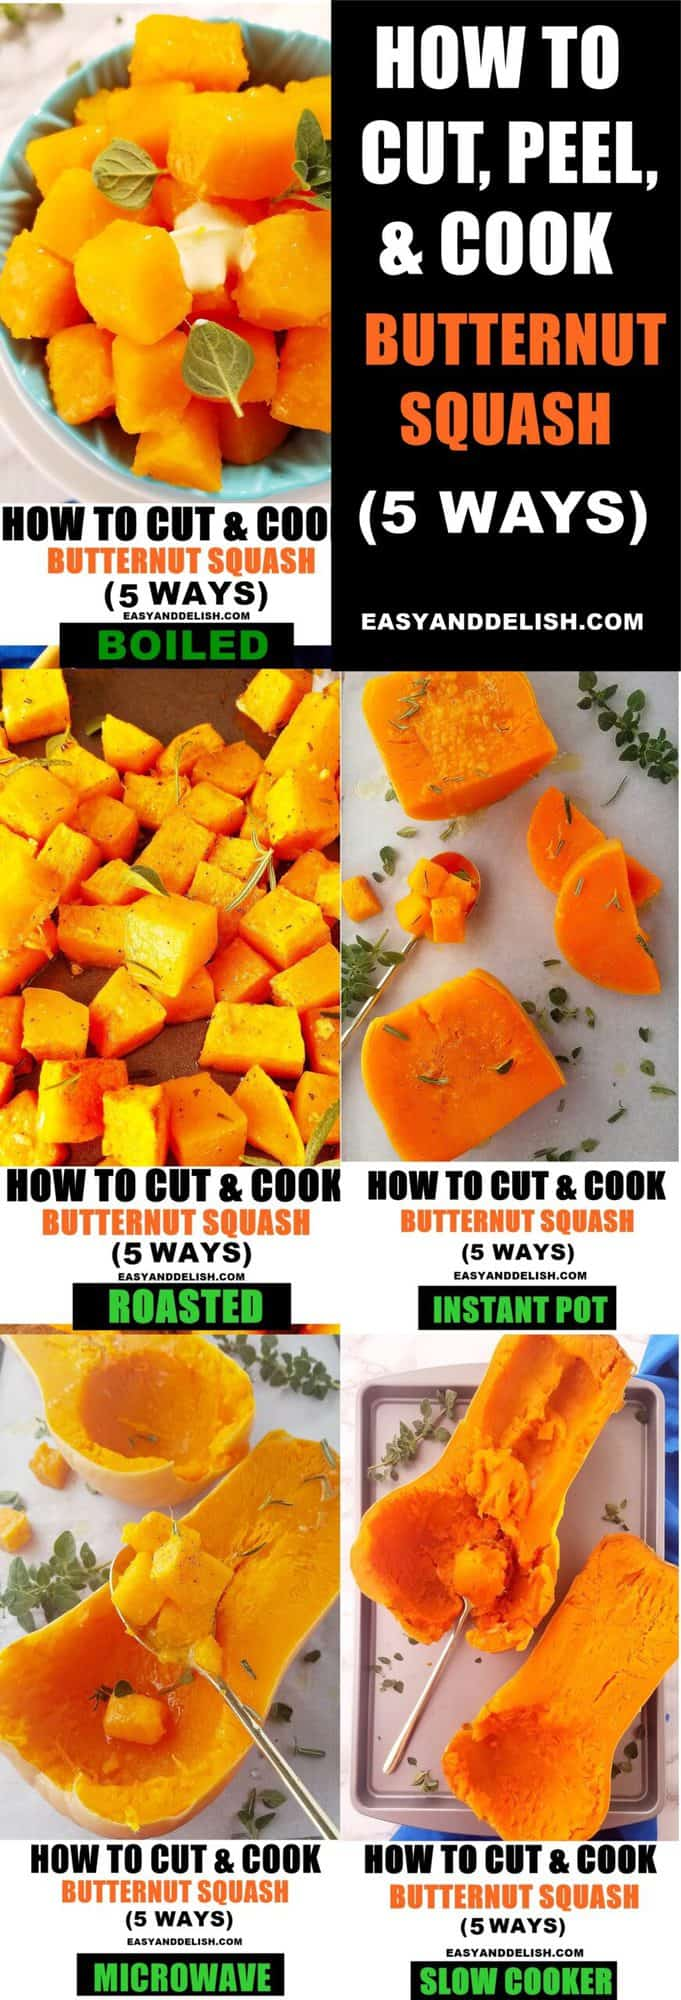 image collage showing all the 5 cooking methods to cook the vegetable